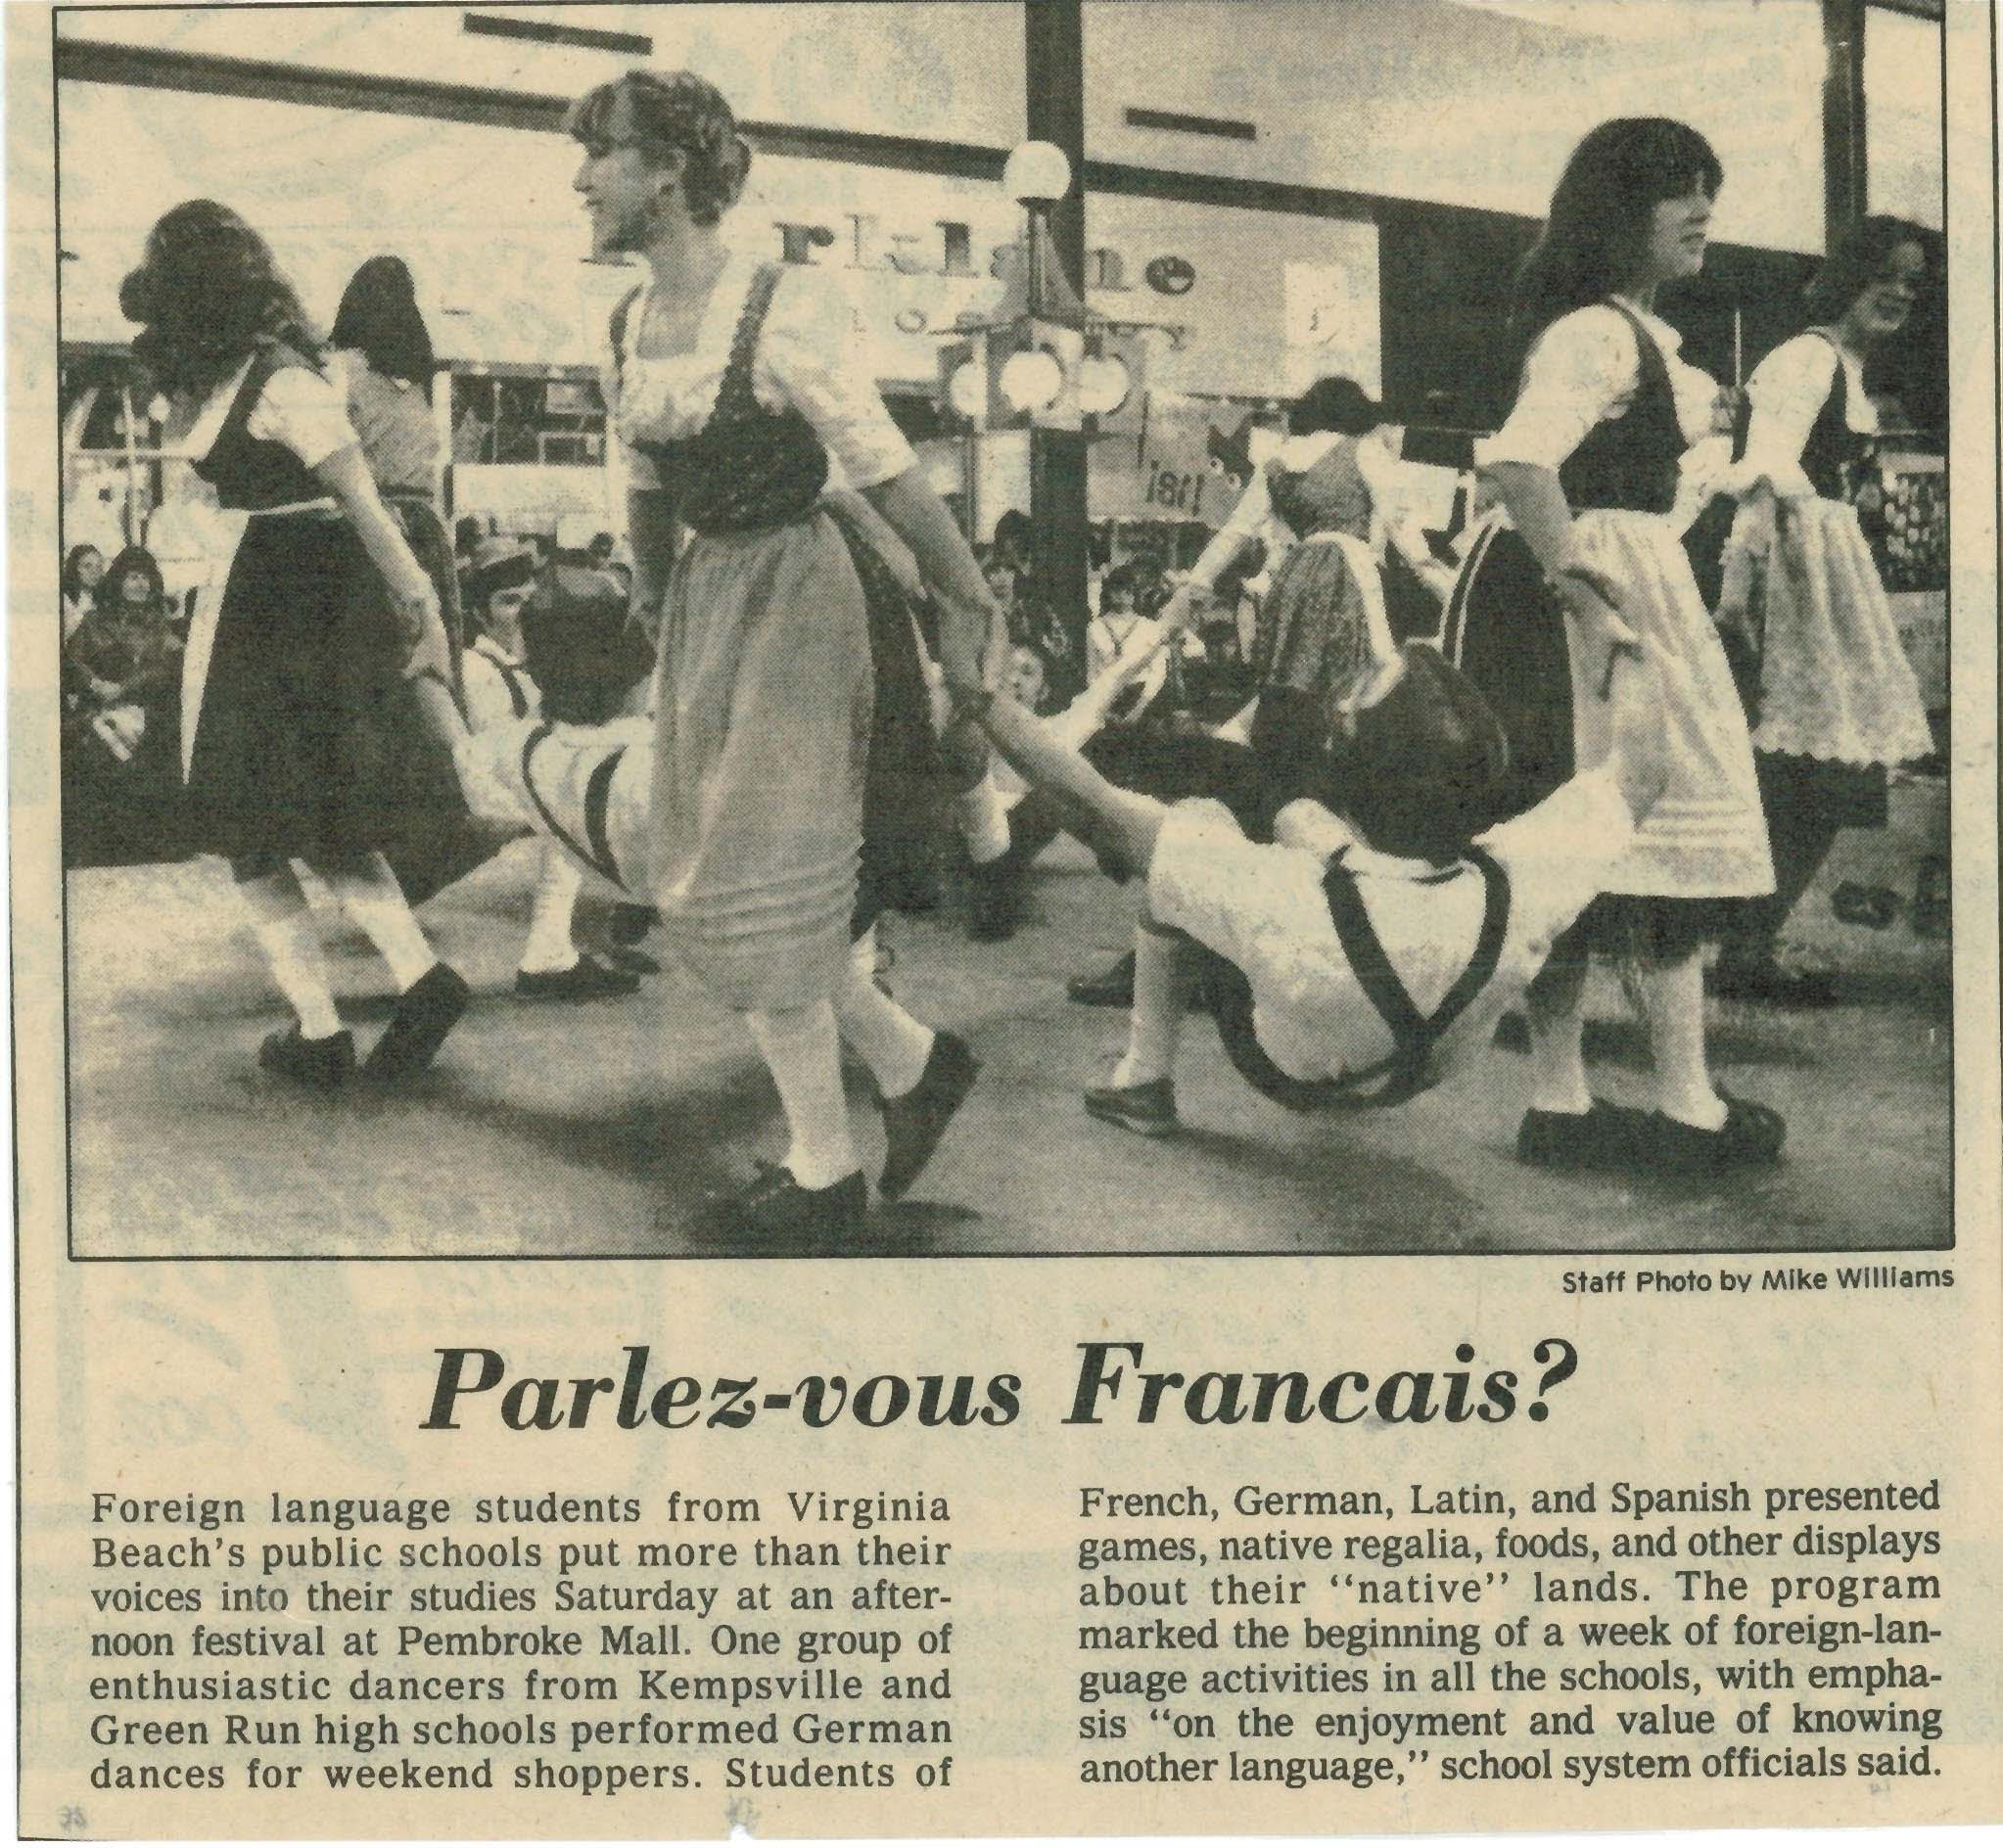 This is a newspaper article showing Stacie Court in high school, dressed in a traditional dirndl with her peers. Stacie is a brunette in the right foreground, holding up her dance partner, Bill, for the highpoint of the Mühlradl, where the guys swing their legs up and down to imitate the workings of a mill).